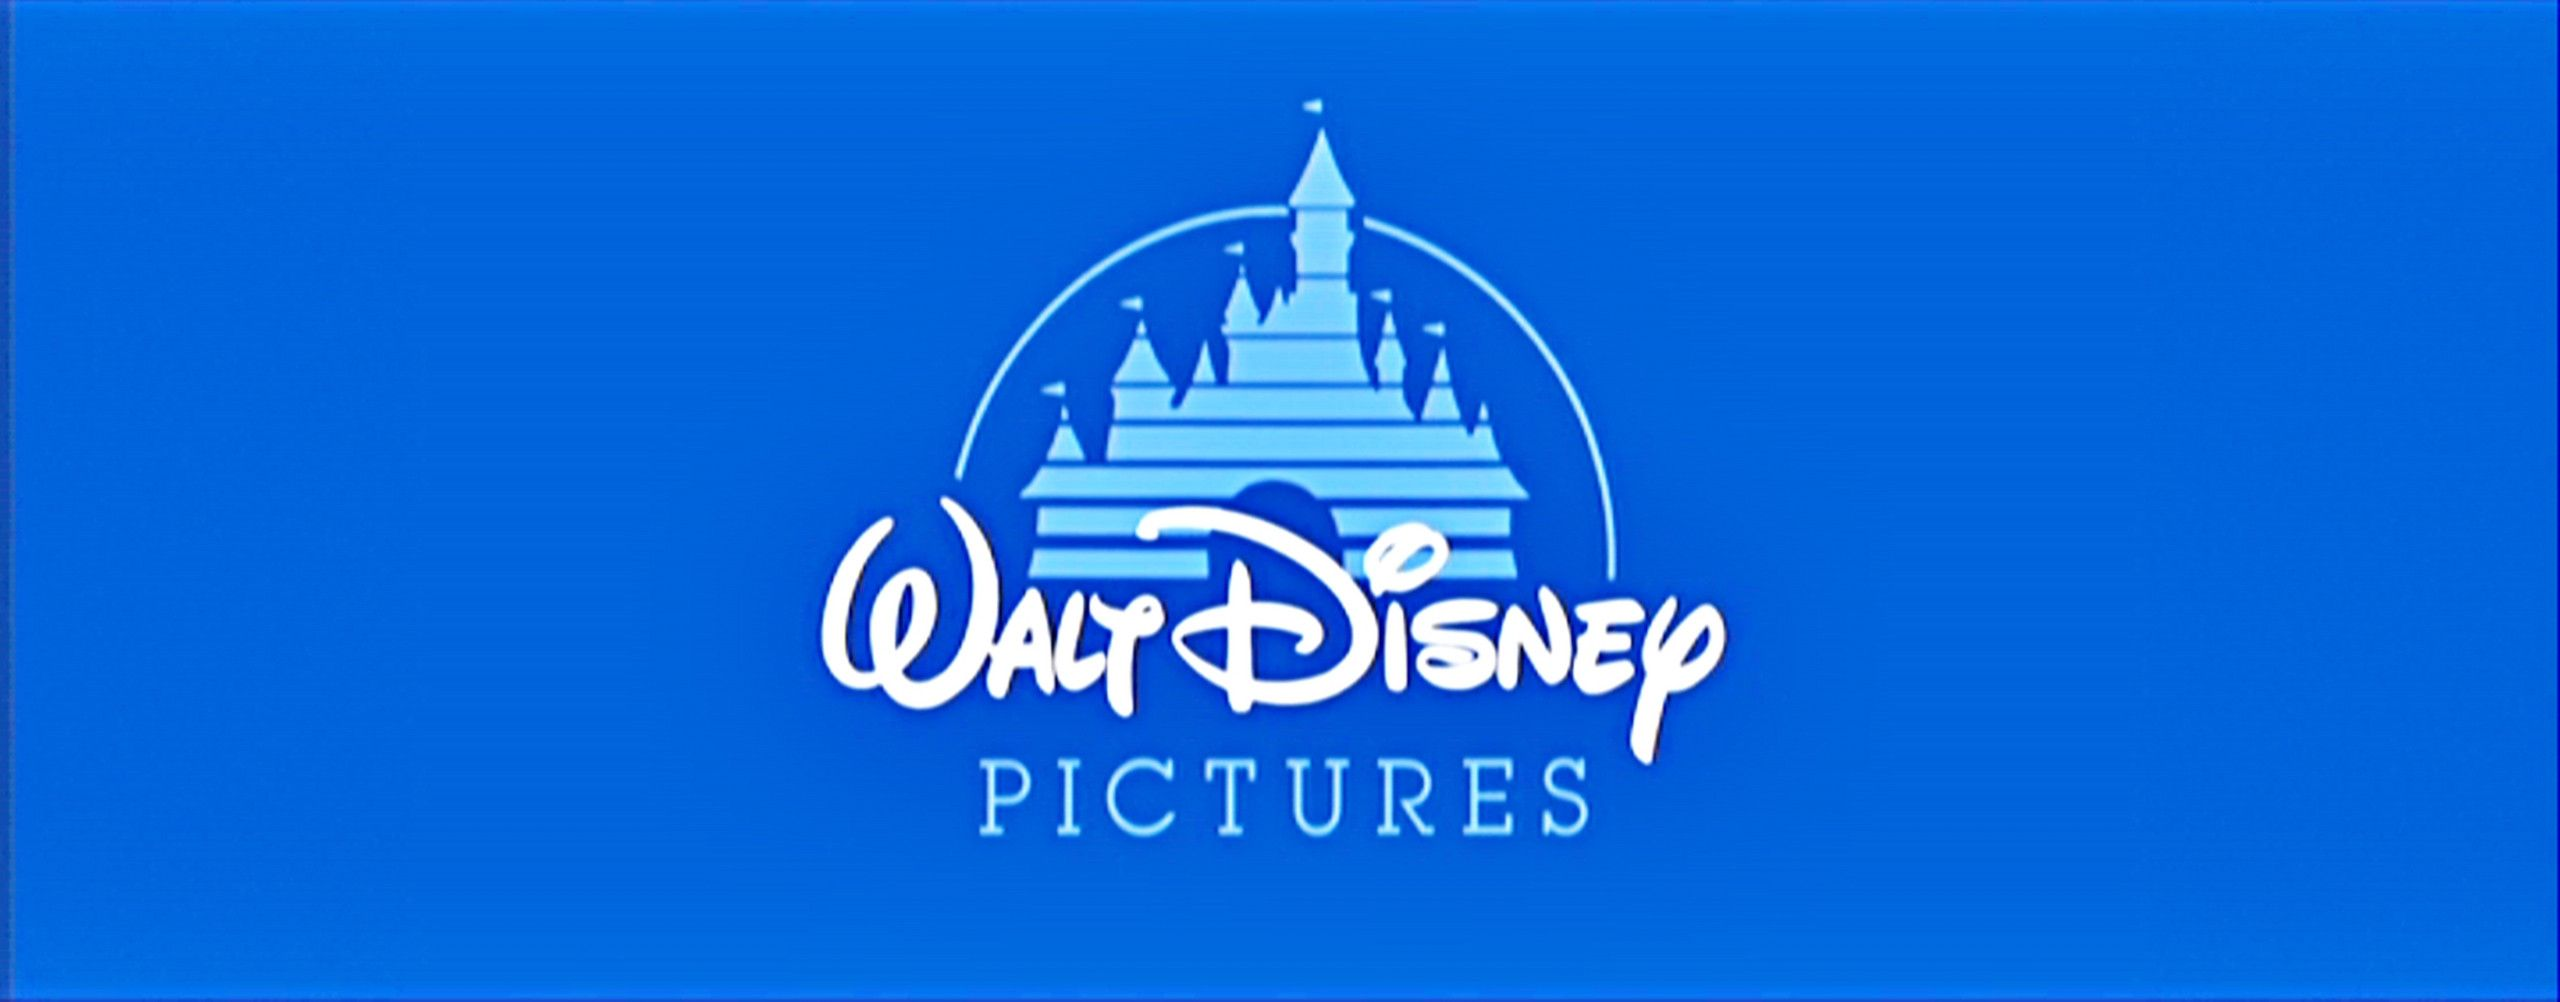 disney logo wallpaper disney HD wallpapers backgrounds images 2560x1002